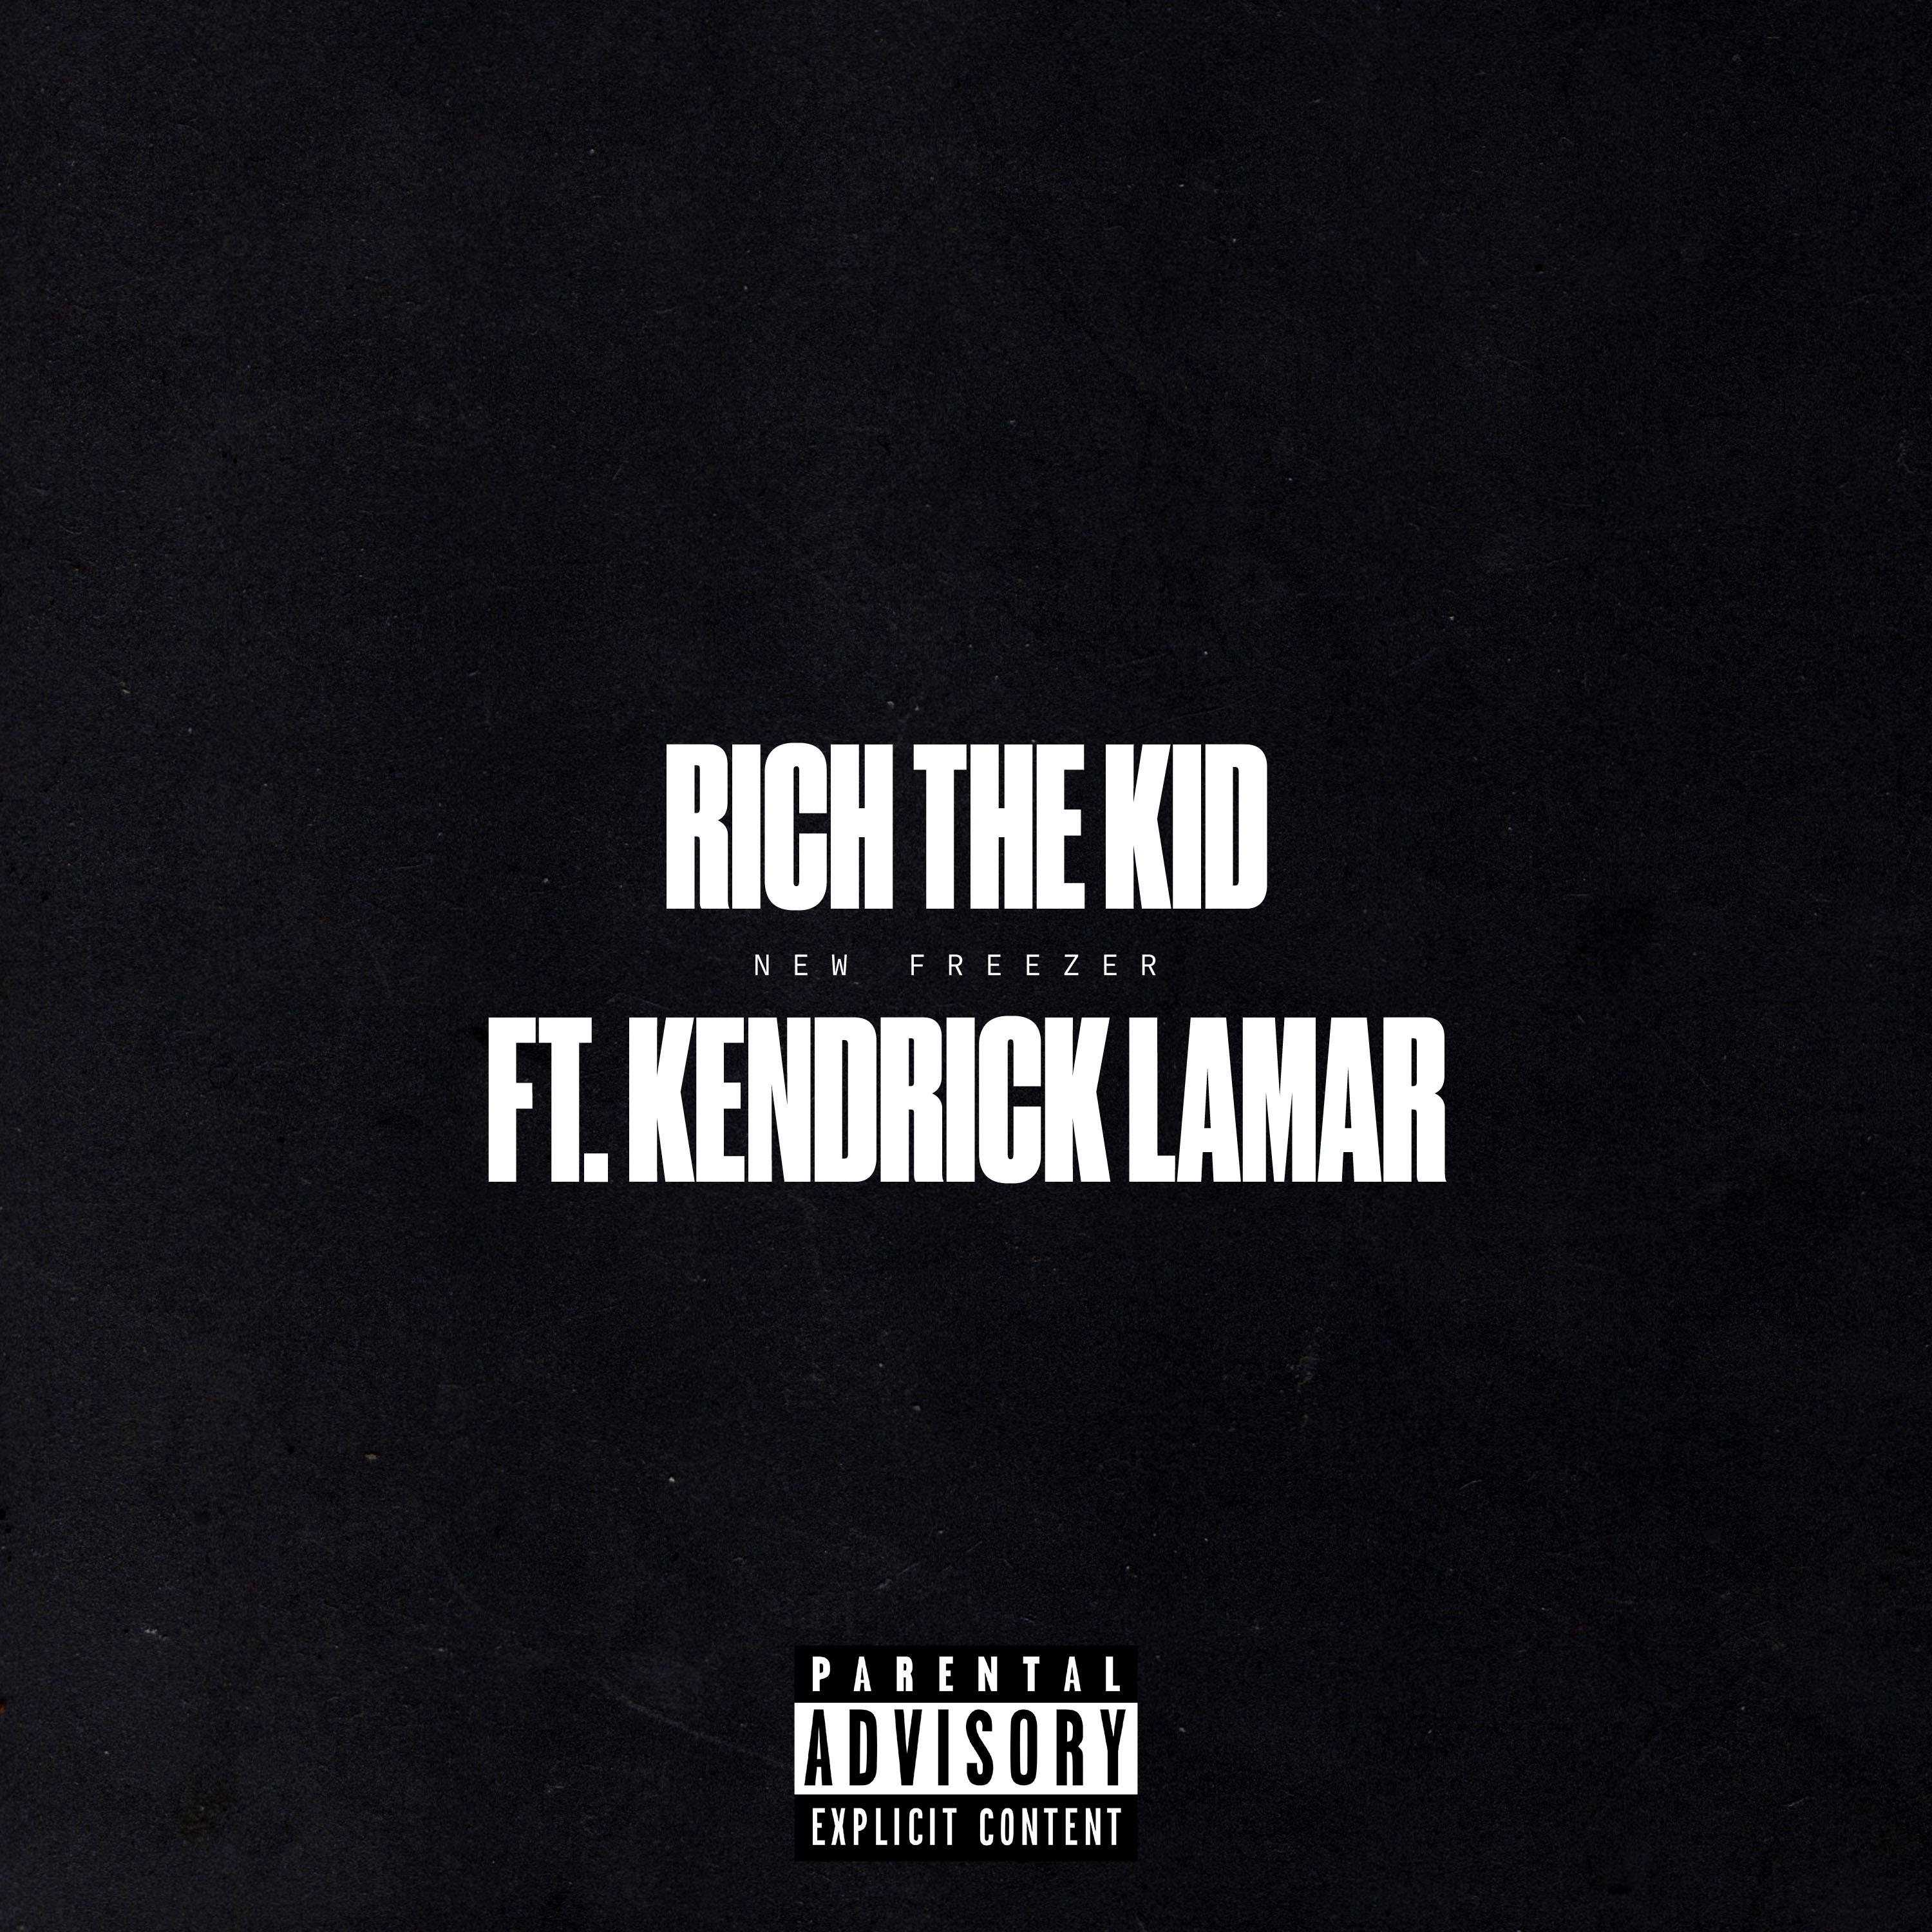 03. Rich-The-Kid_New-Freezer Cover Art